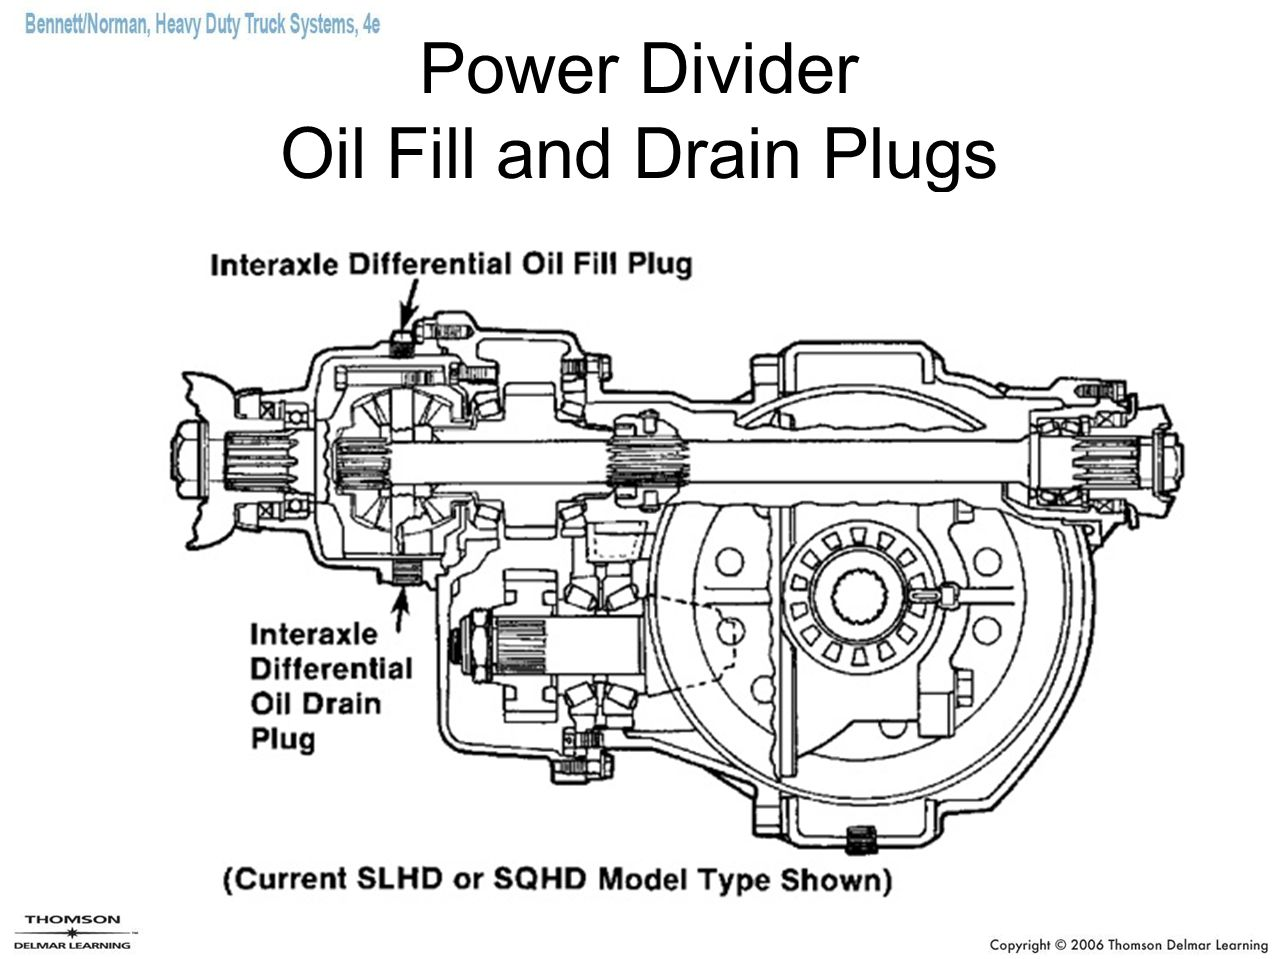 Power Divider Differential